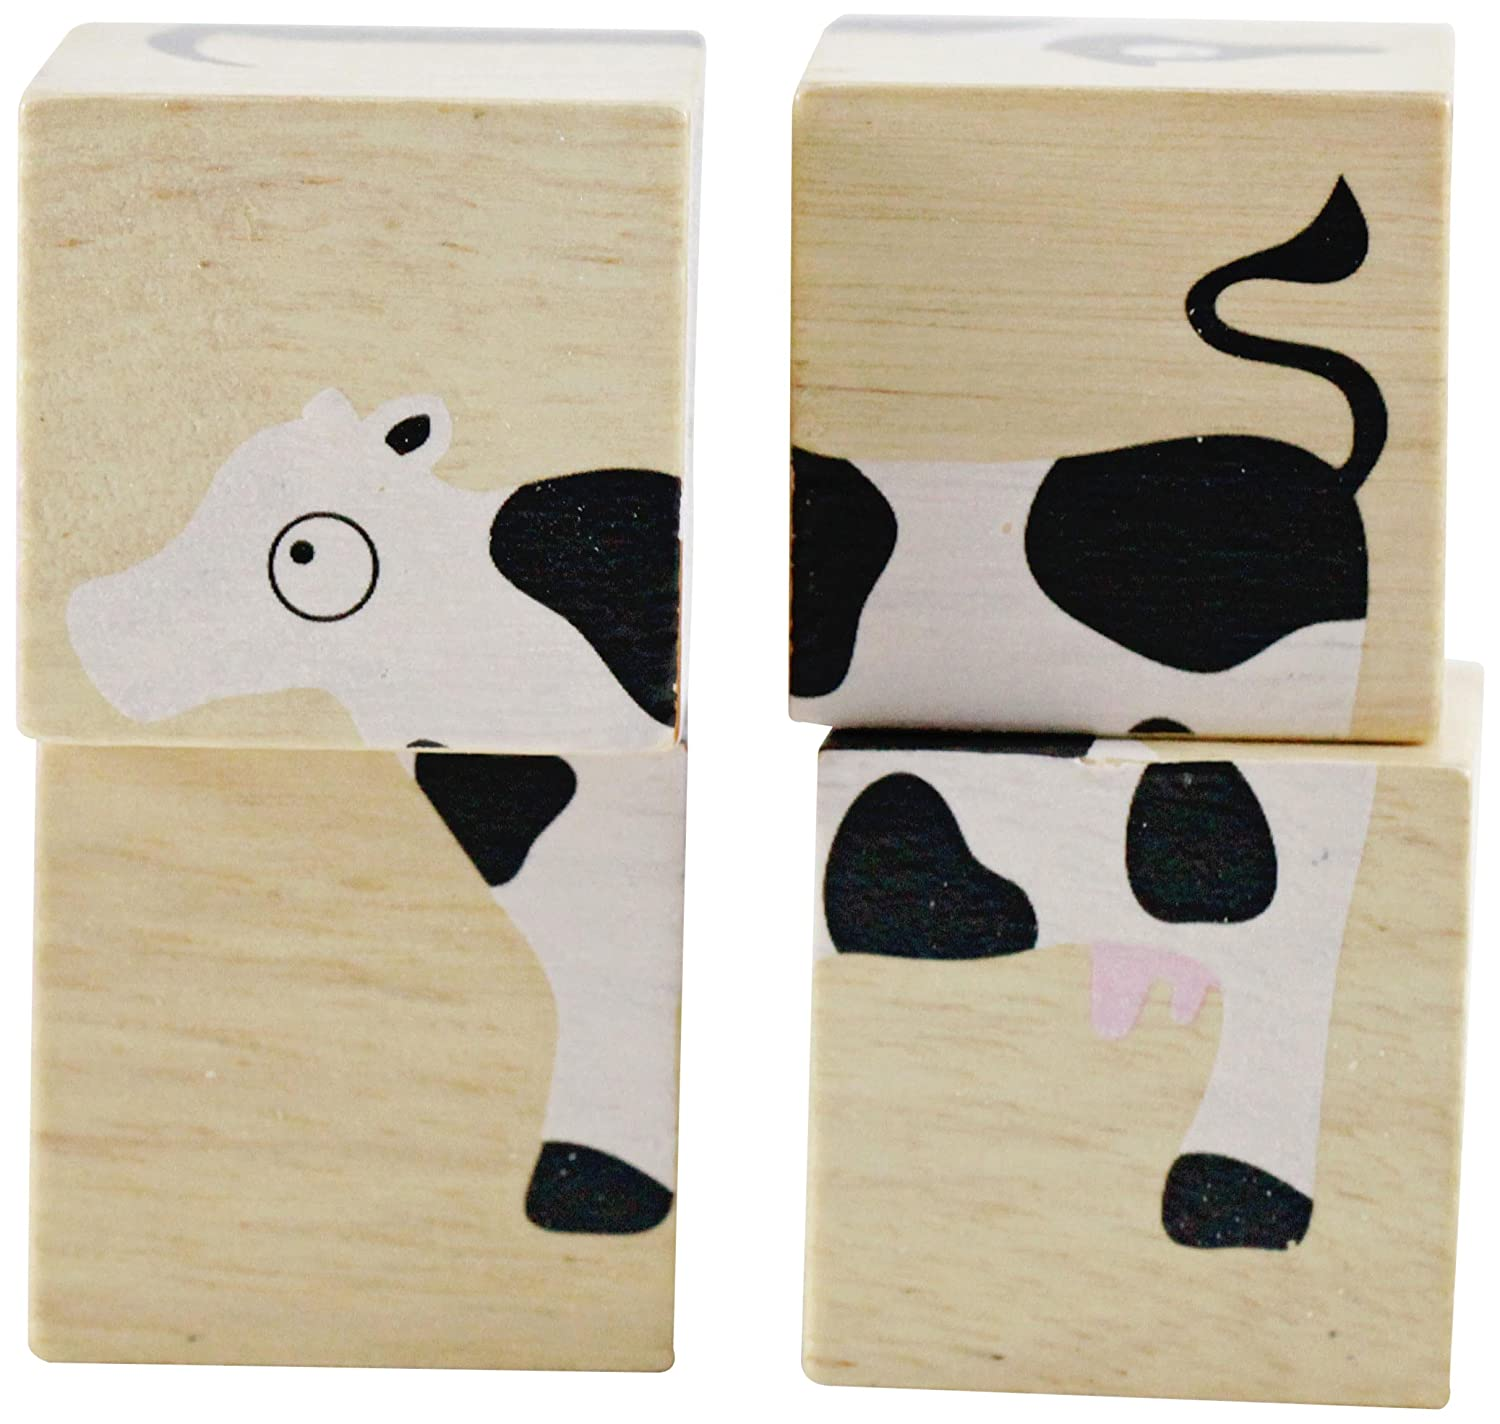 BeginAgain BuddyBlocks - Farm Animals - Wooden Blocks and Puzzle Game - Handcrafted Baby Toys for Learning - Great Educational Toys for Toddlers! by BeginAgain B1211